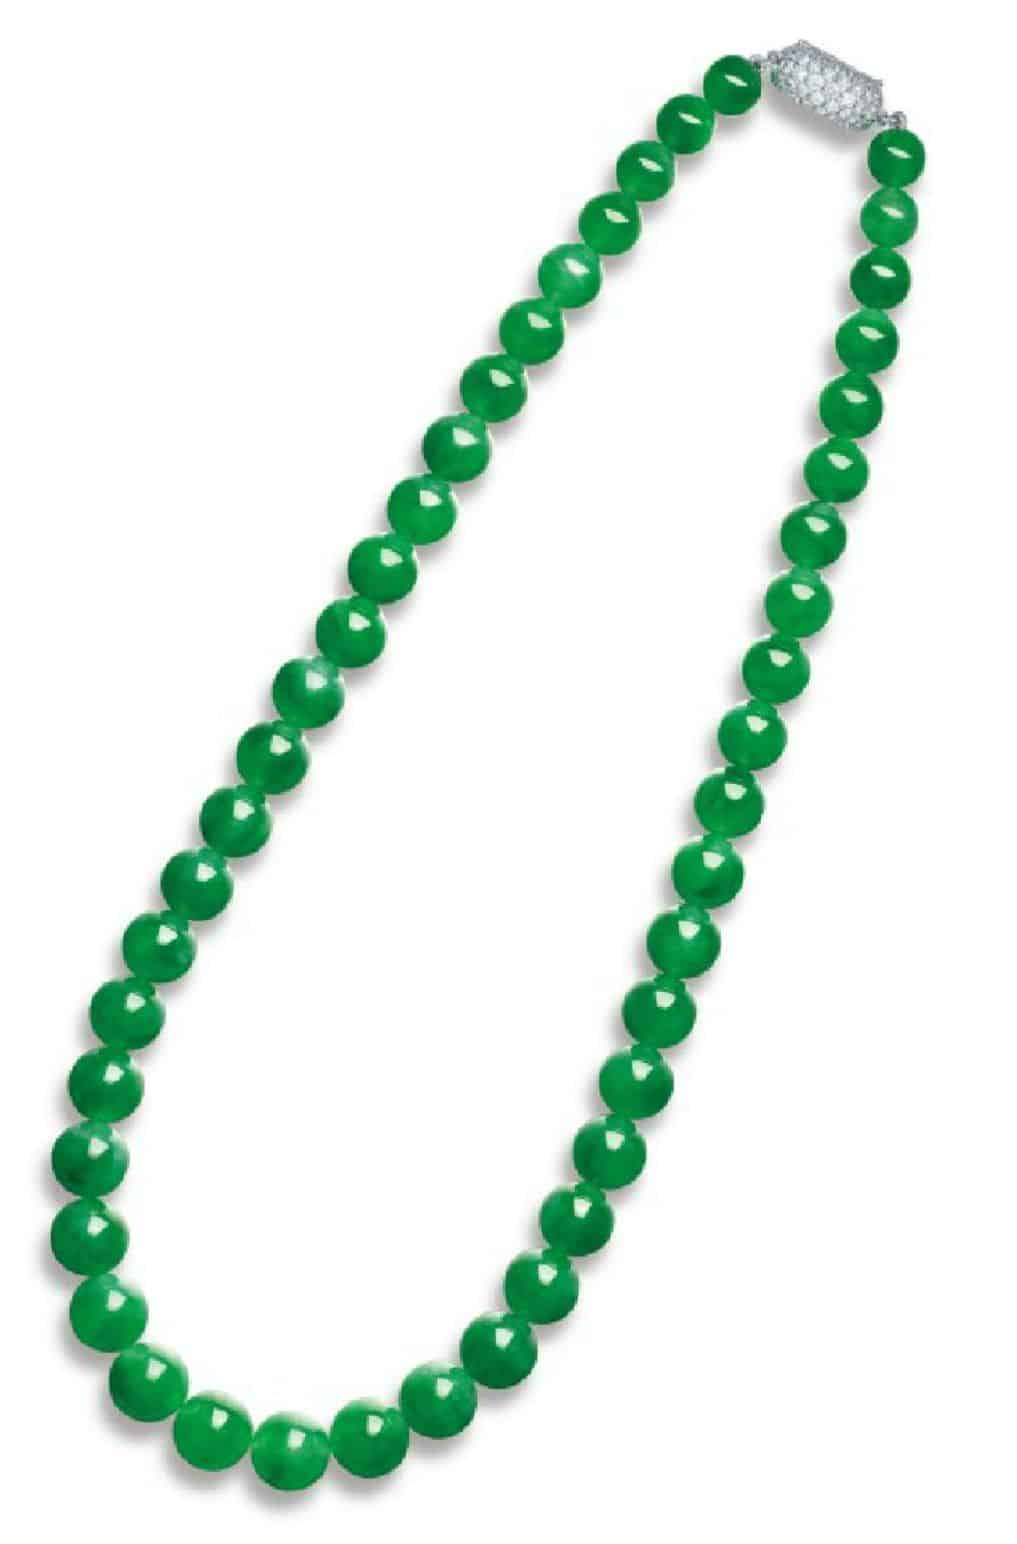 LOT 2011 - THE INNER STRAND OF THE IMPORTANT JADEITE AND DIAMOND NECKLACE